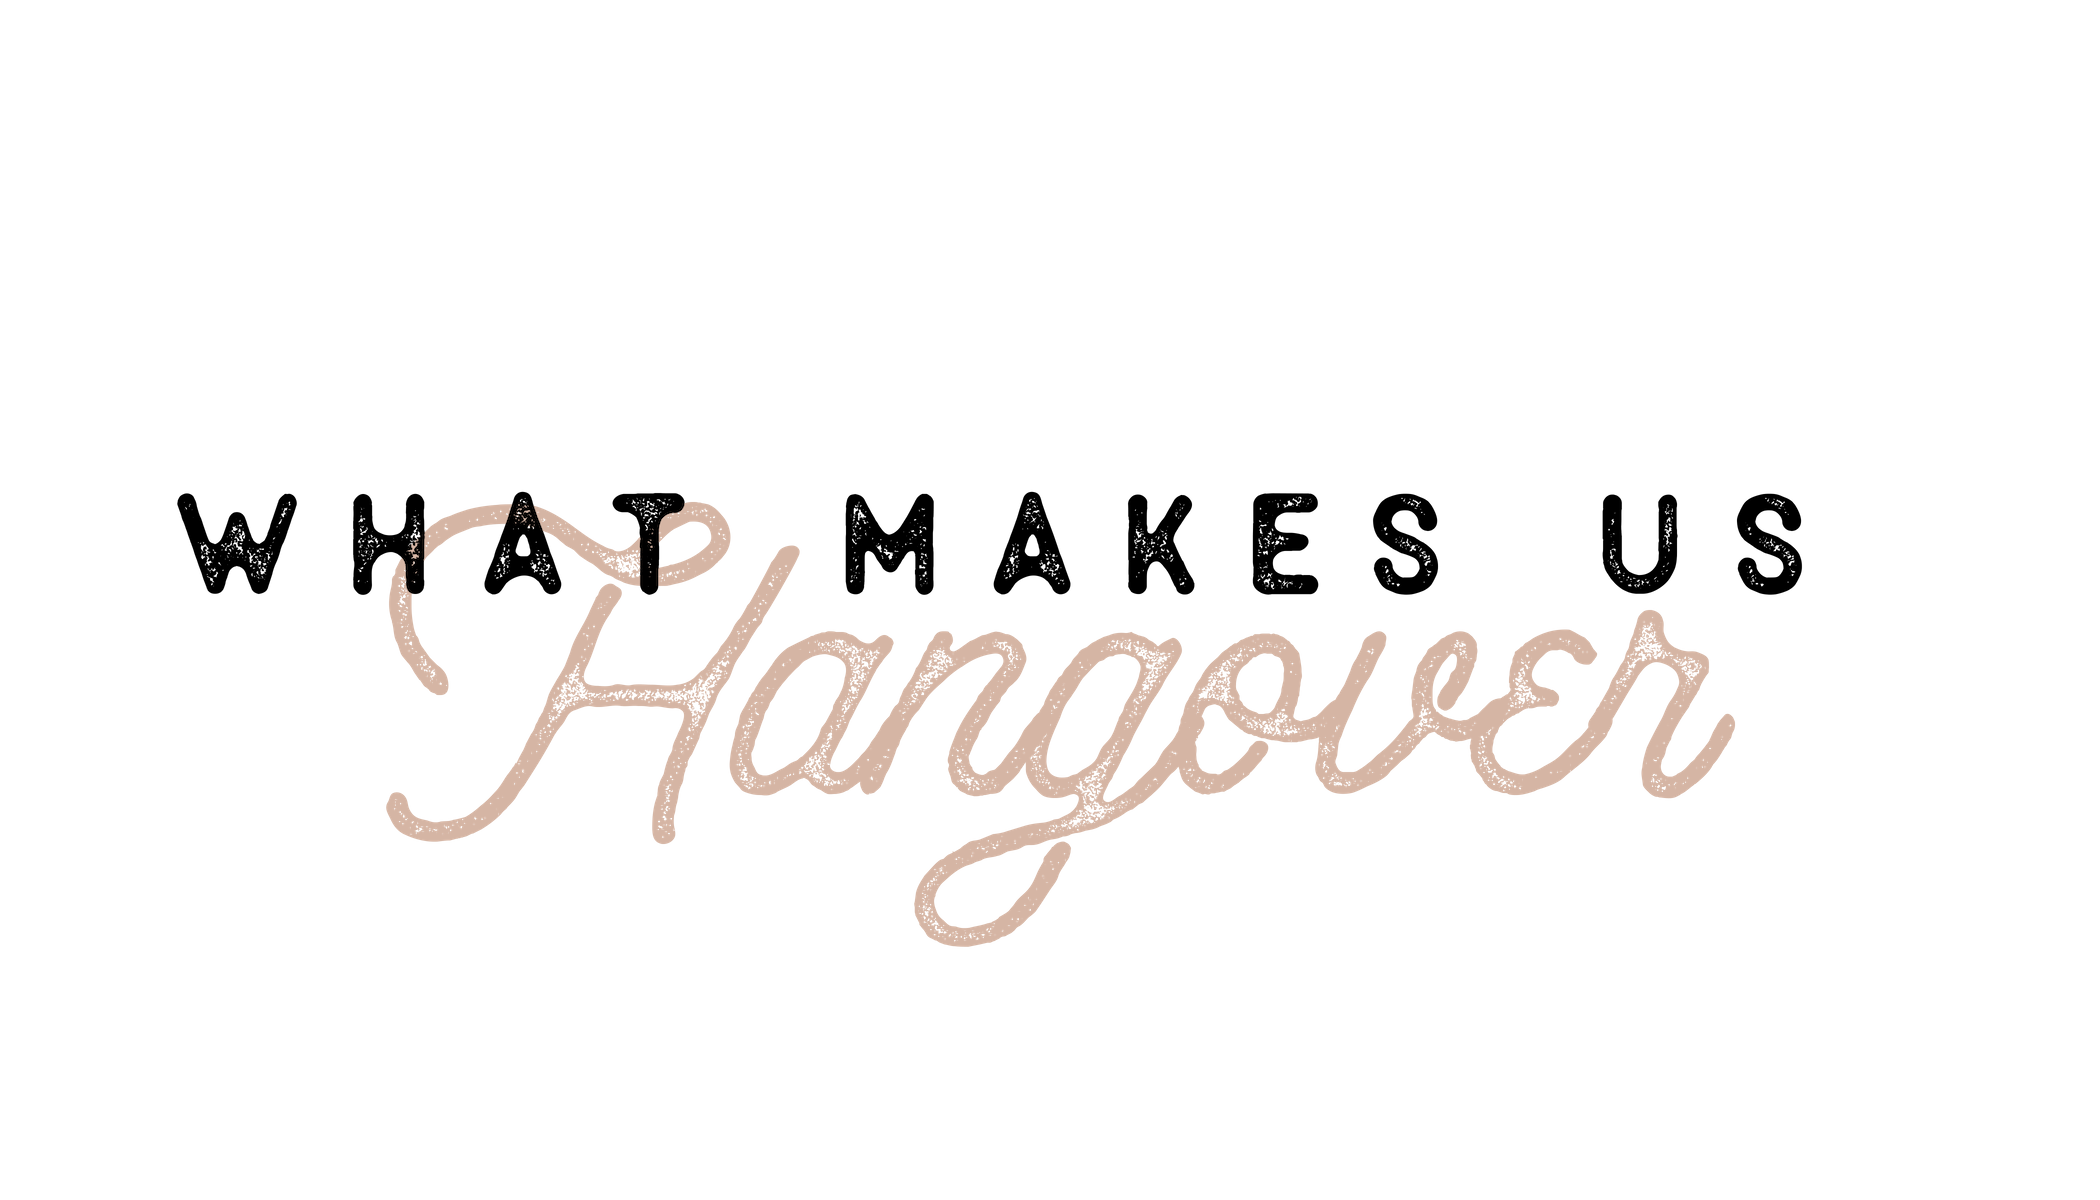 Copy of Hangover Branding Ideas-5.png